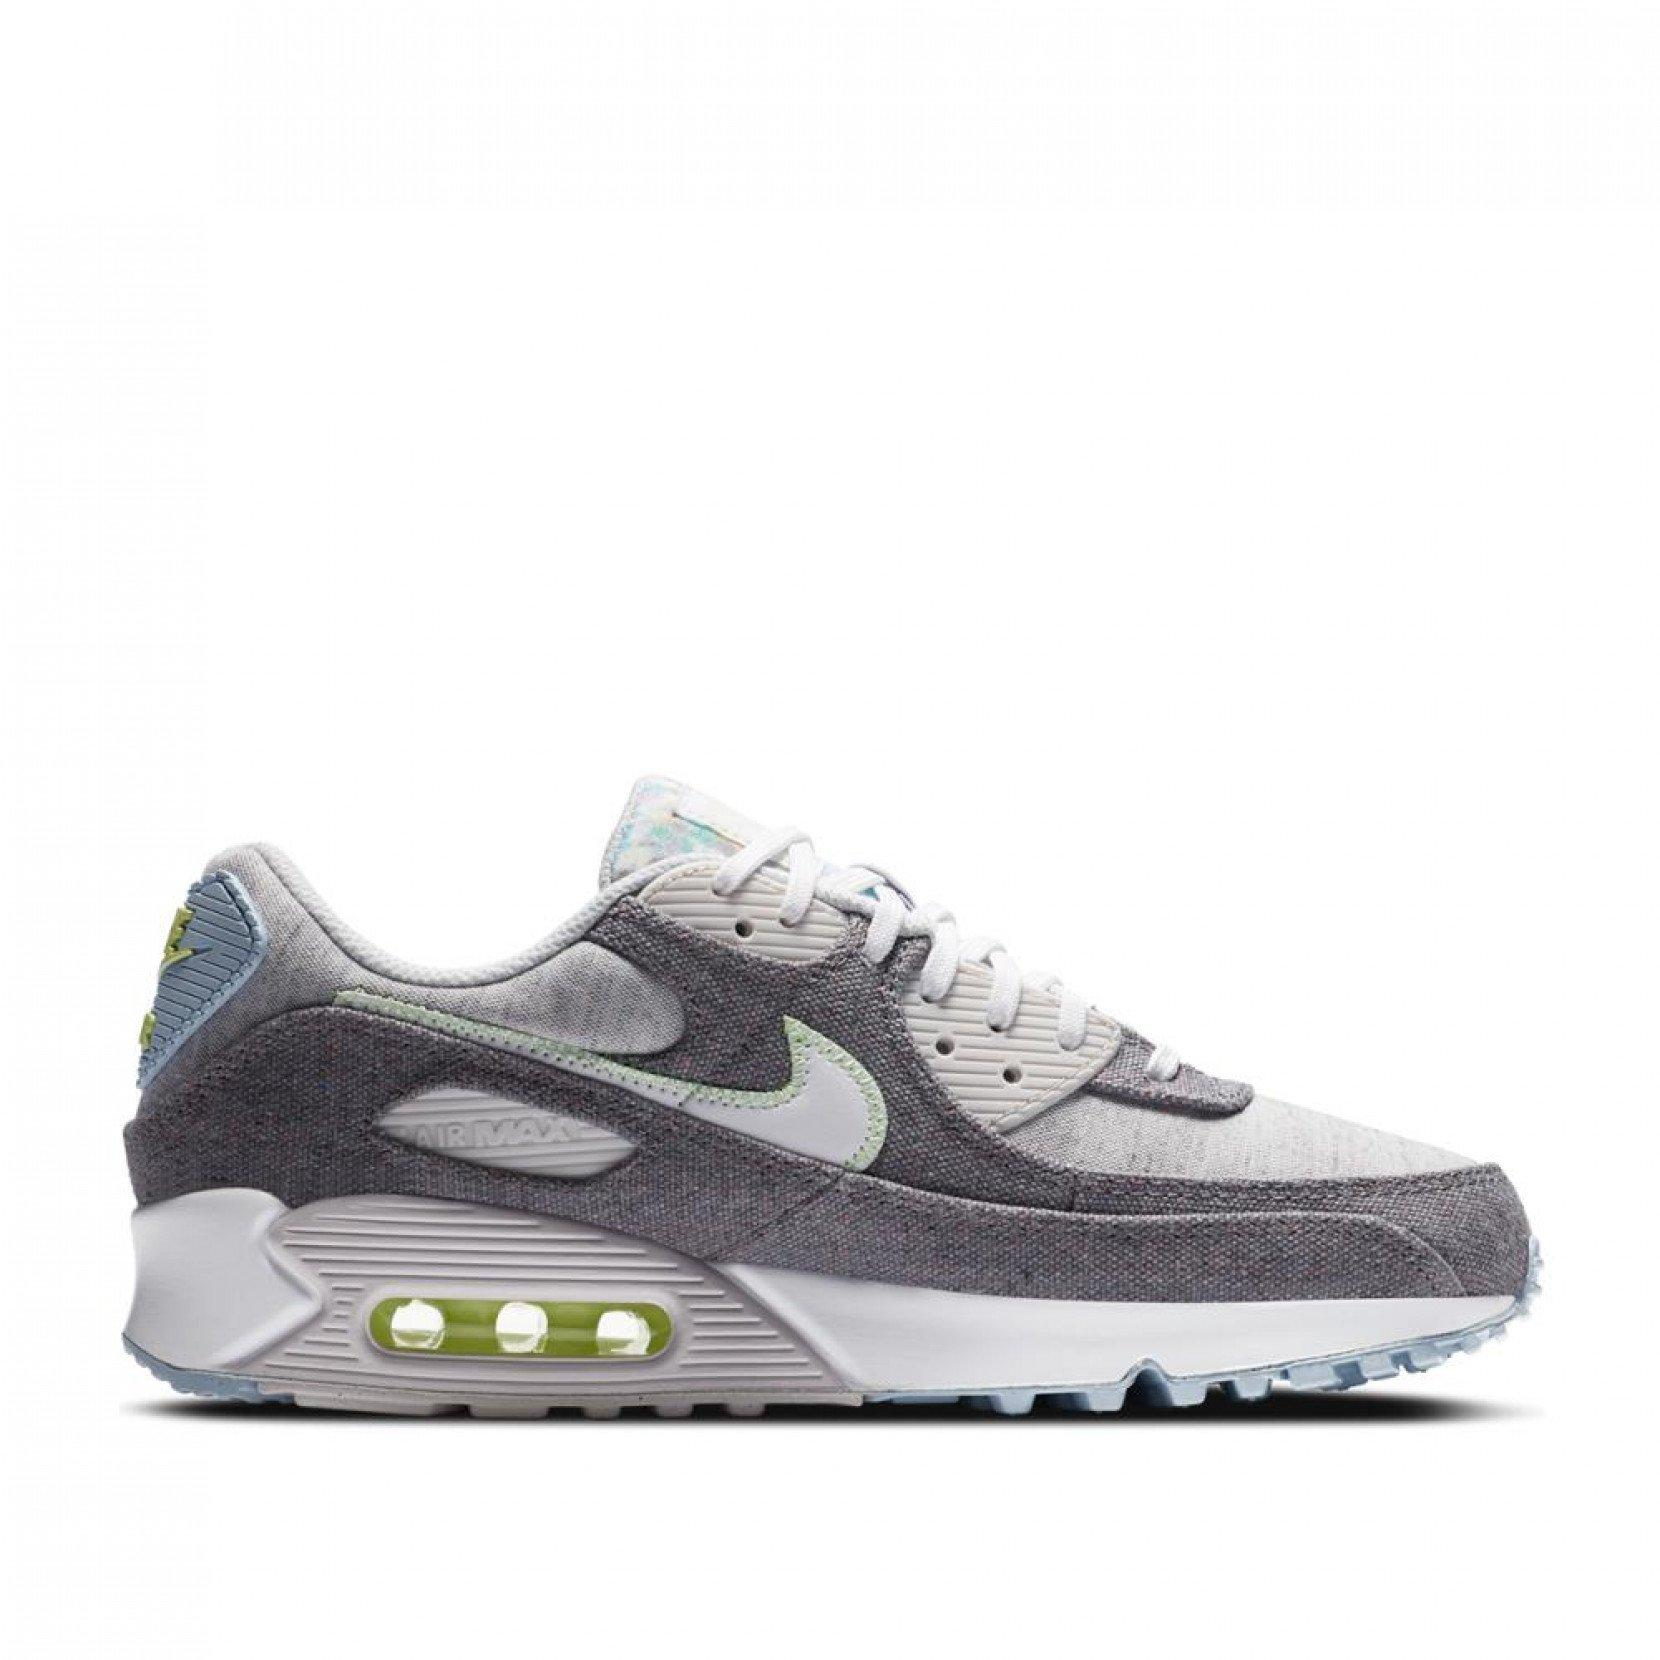 Nike Leather Air Max 90 Nrg in Grey (Gray) for Men - Lyst